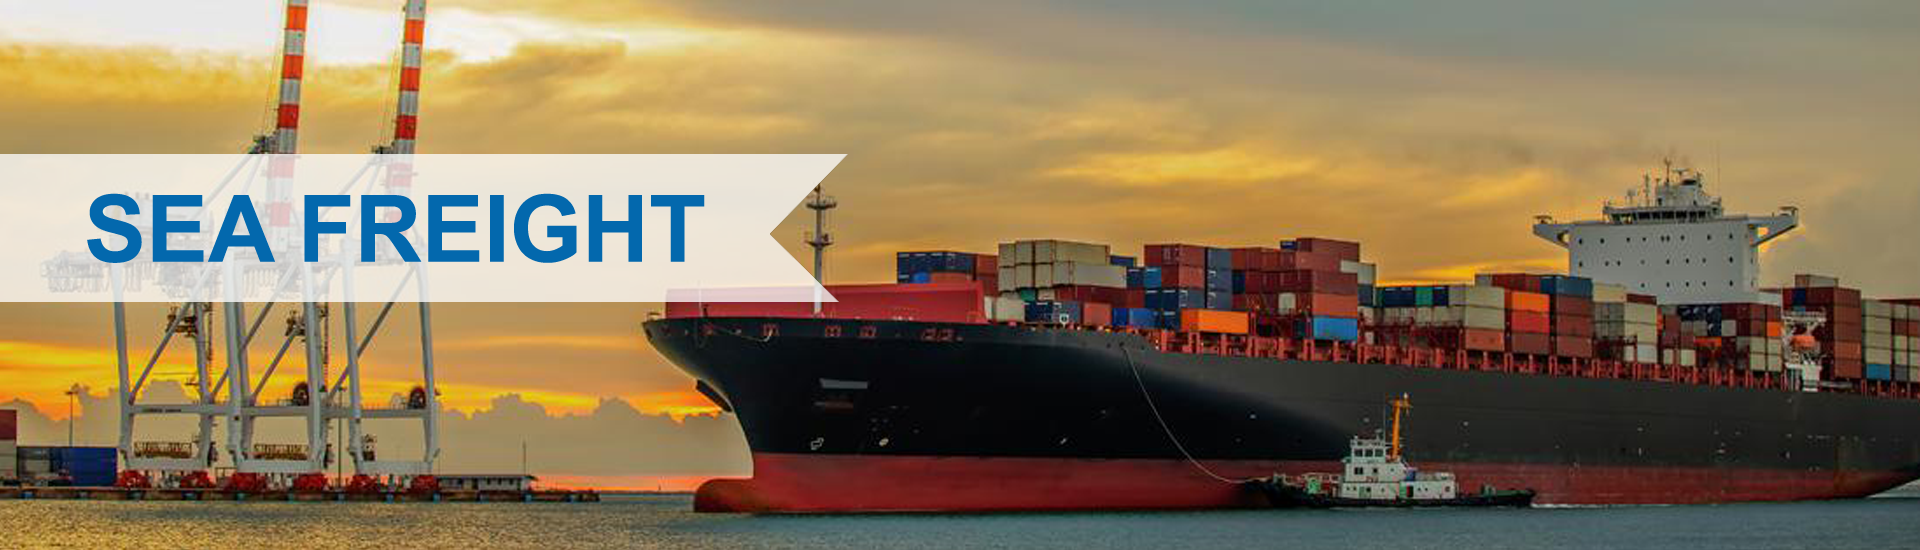 sea freight banner service in